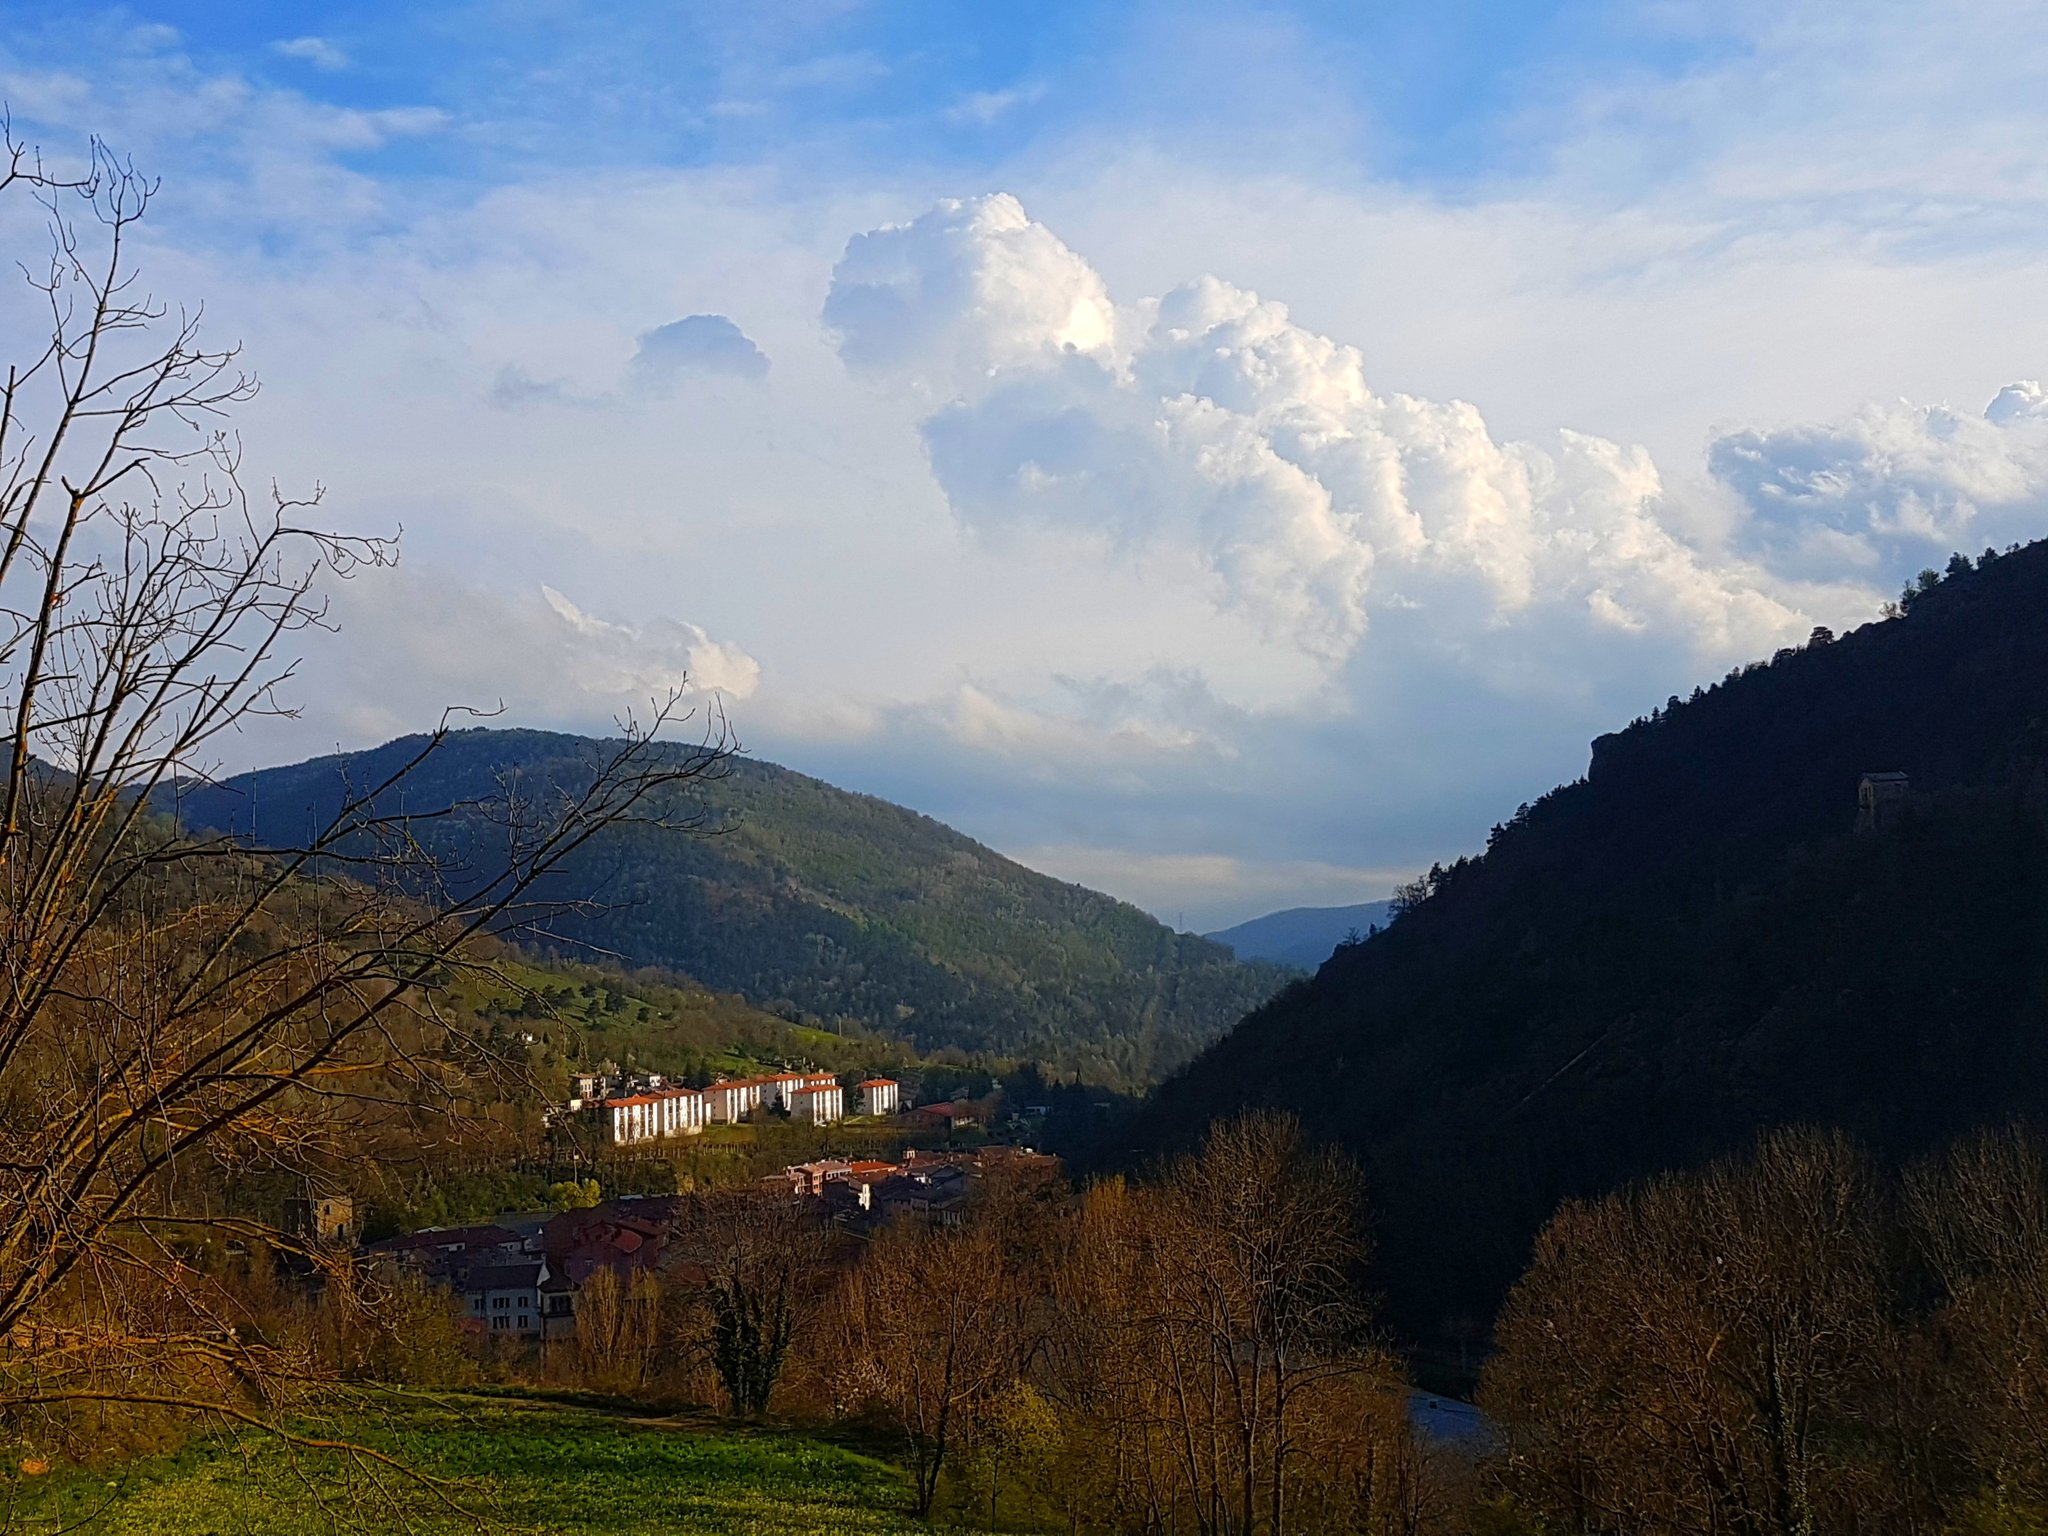 Now this is a view. We are in Ribes de Freser #InCostaBrava. Up #InPyrenees. Surrounded by cows and mountains. Feeling above it all. #Travel https://t.co/sDDaZQcmI9